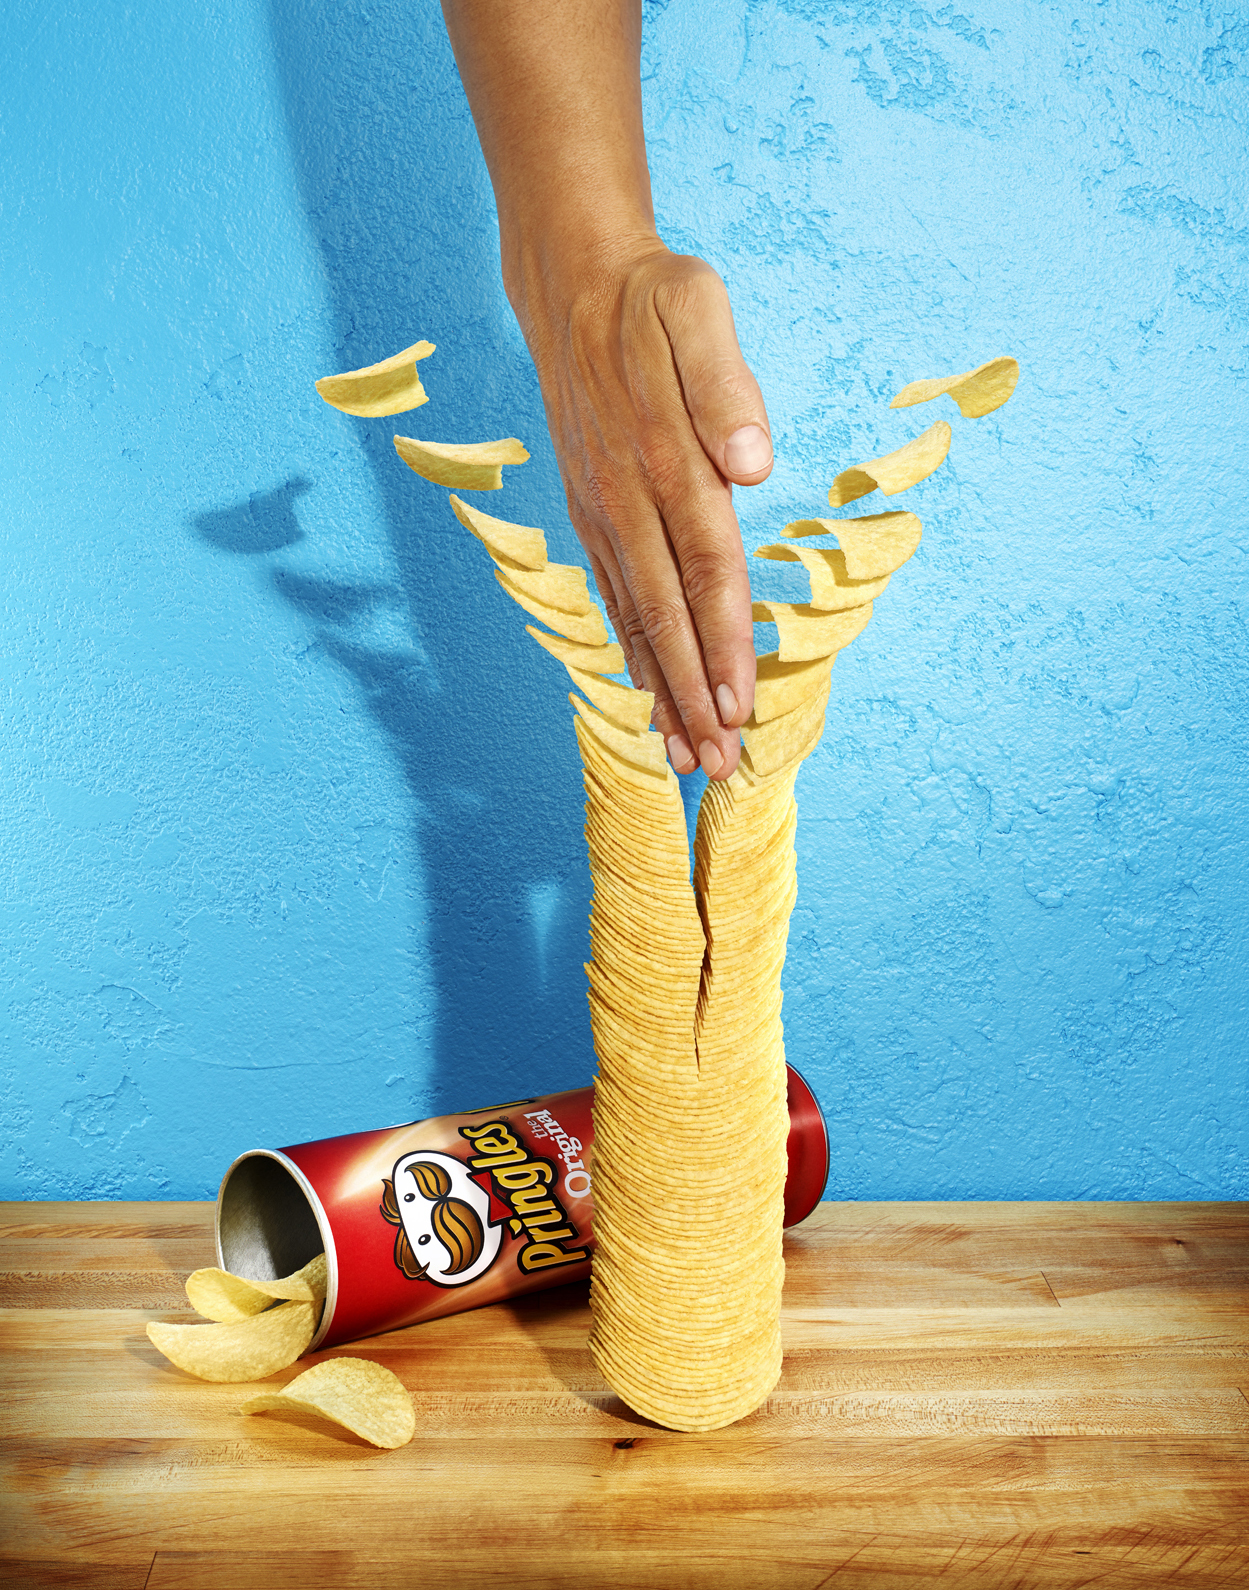 Pringles-Chips-Tower